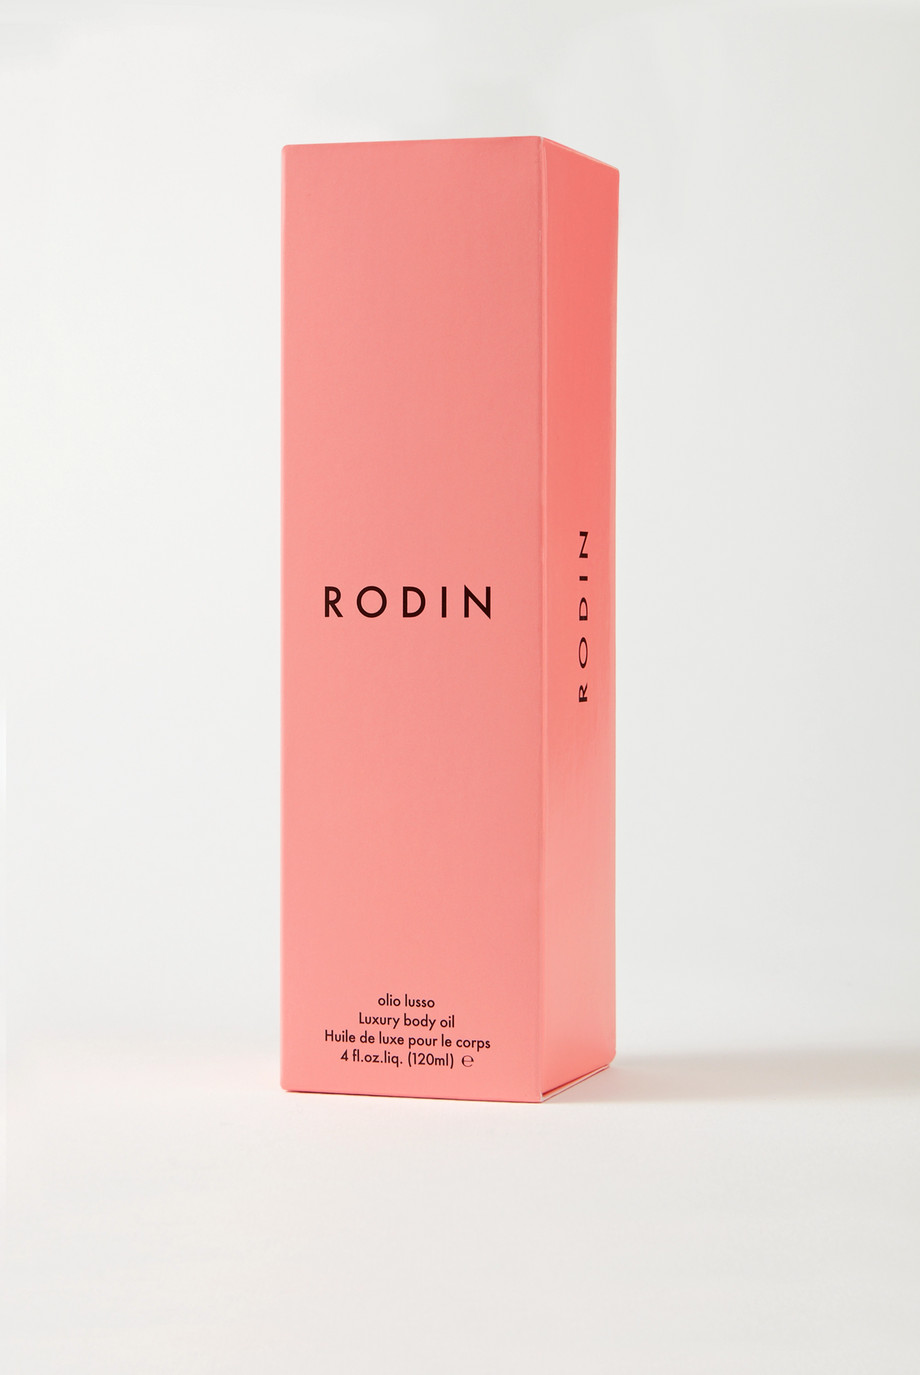 RODIN Luxury Body Oil - Geranium & Orange Blossom, 120ml